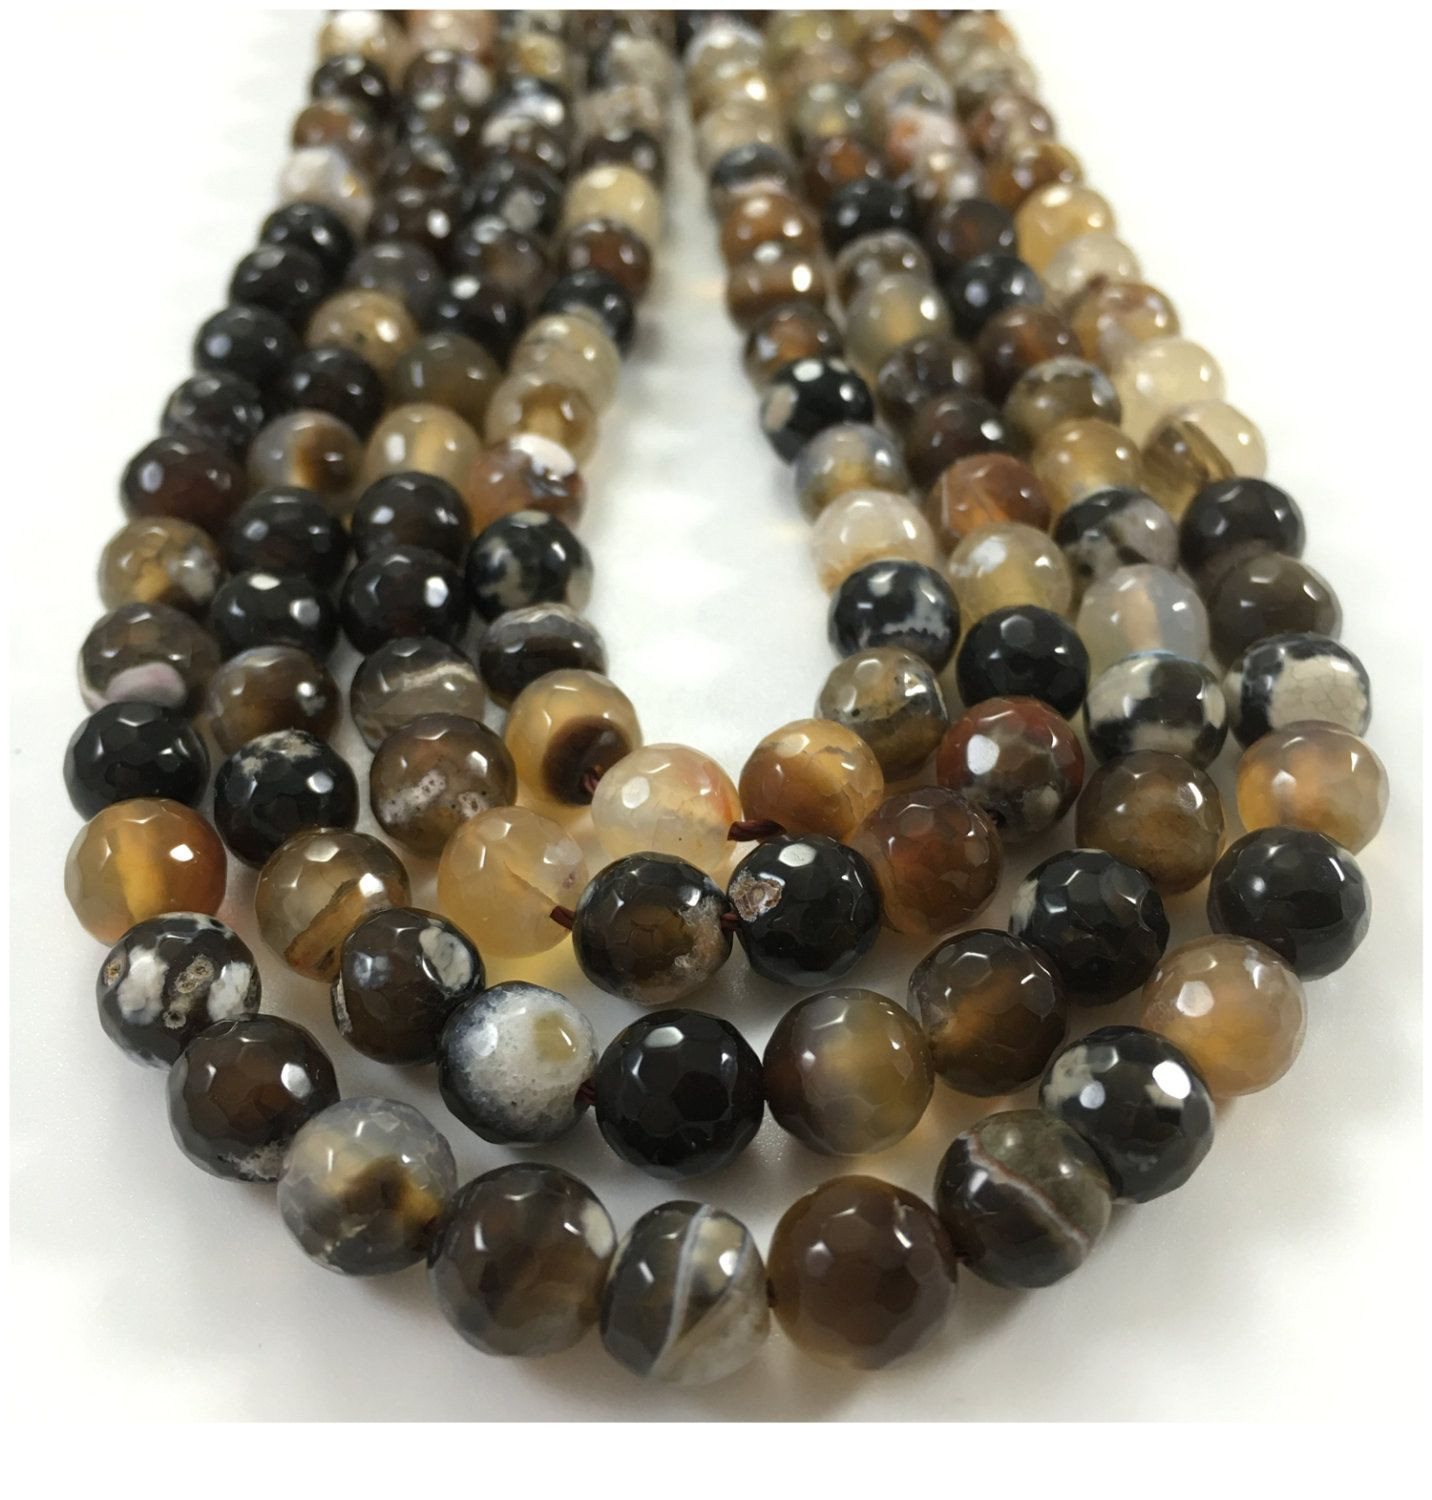 gemstone for jewelry pinterest amp best on of collections wholesale beads images super making new